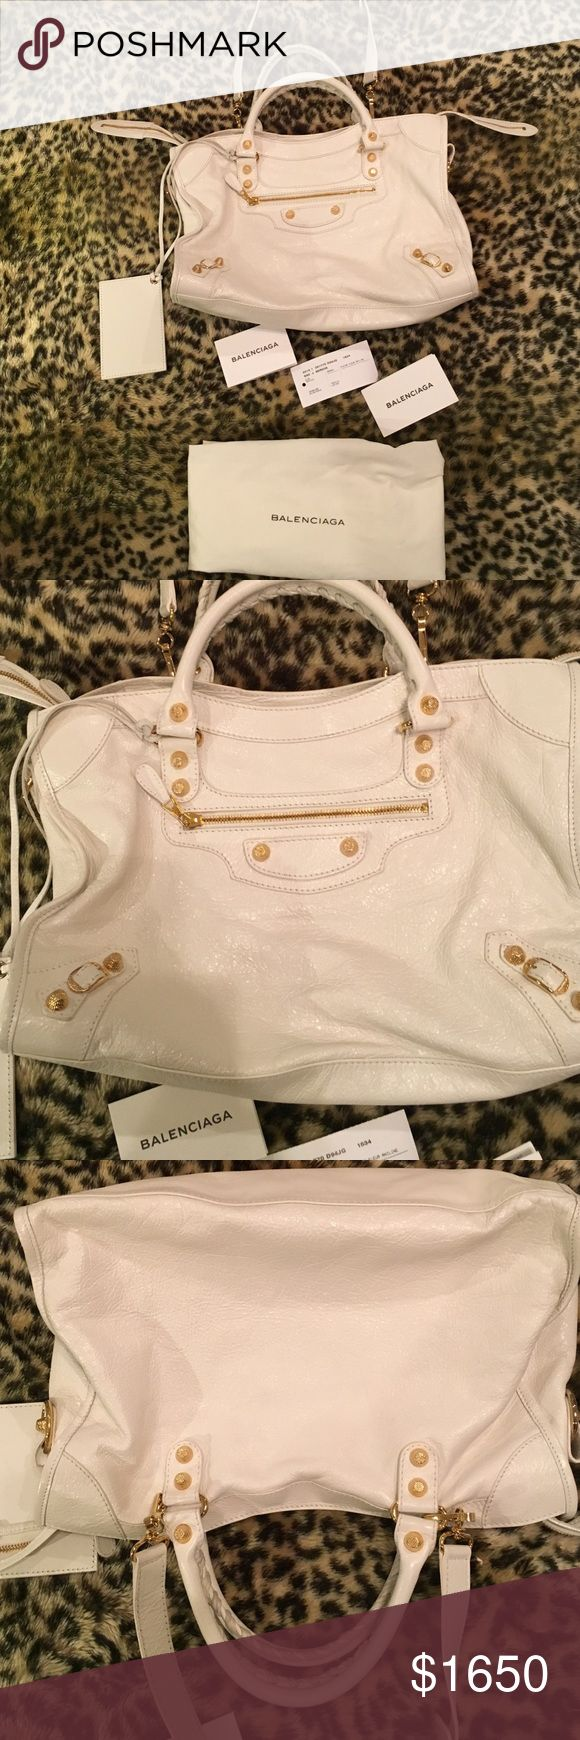 """White classic city balenciaga Balenciaga """"Classic City"""" bag white with metal-edged golden hardware,  Hand-stitched top handles, 4"""" drop. Removable shoulder strap, 8"""" drop. Extended zip top closure. Exterior front zip pocket. Cotton-lined interior; one zip and two slip pockets. Removable hanging leather-frame hand mirror. 9.4""""H x 14.8""""W x 5.5""""D; weighs 1 lb. 11.8 oz. Made in Italy. Balenciaga Bags Shoulder Bags"""